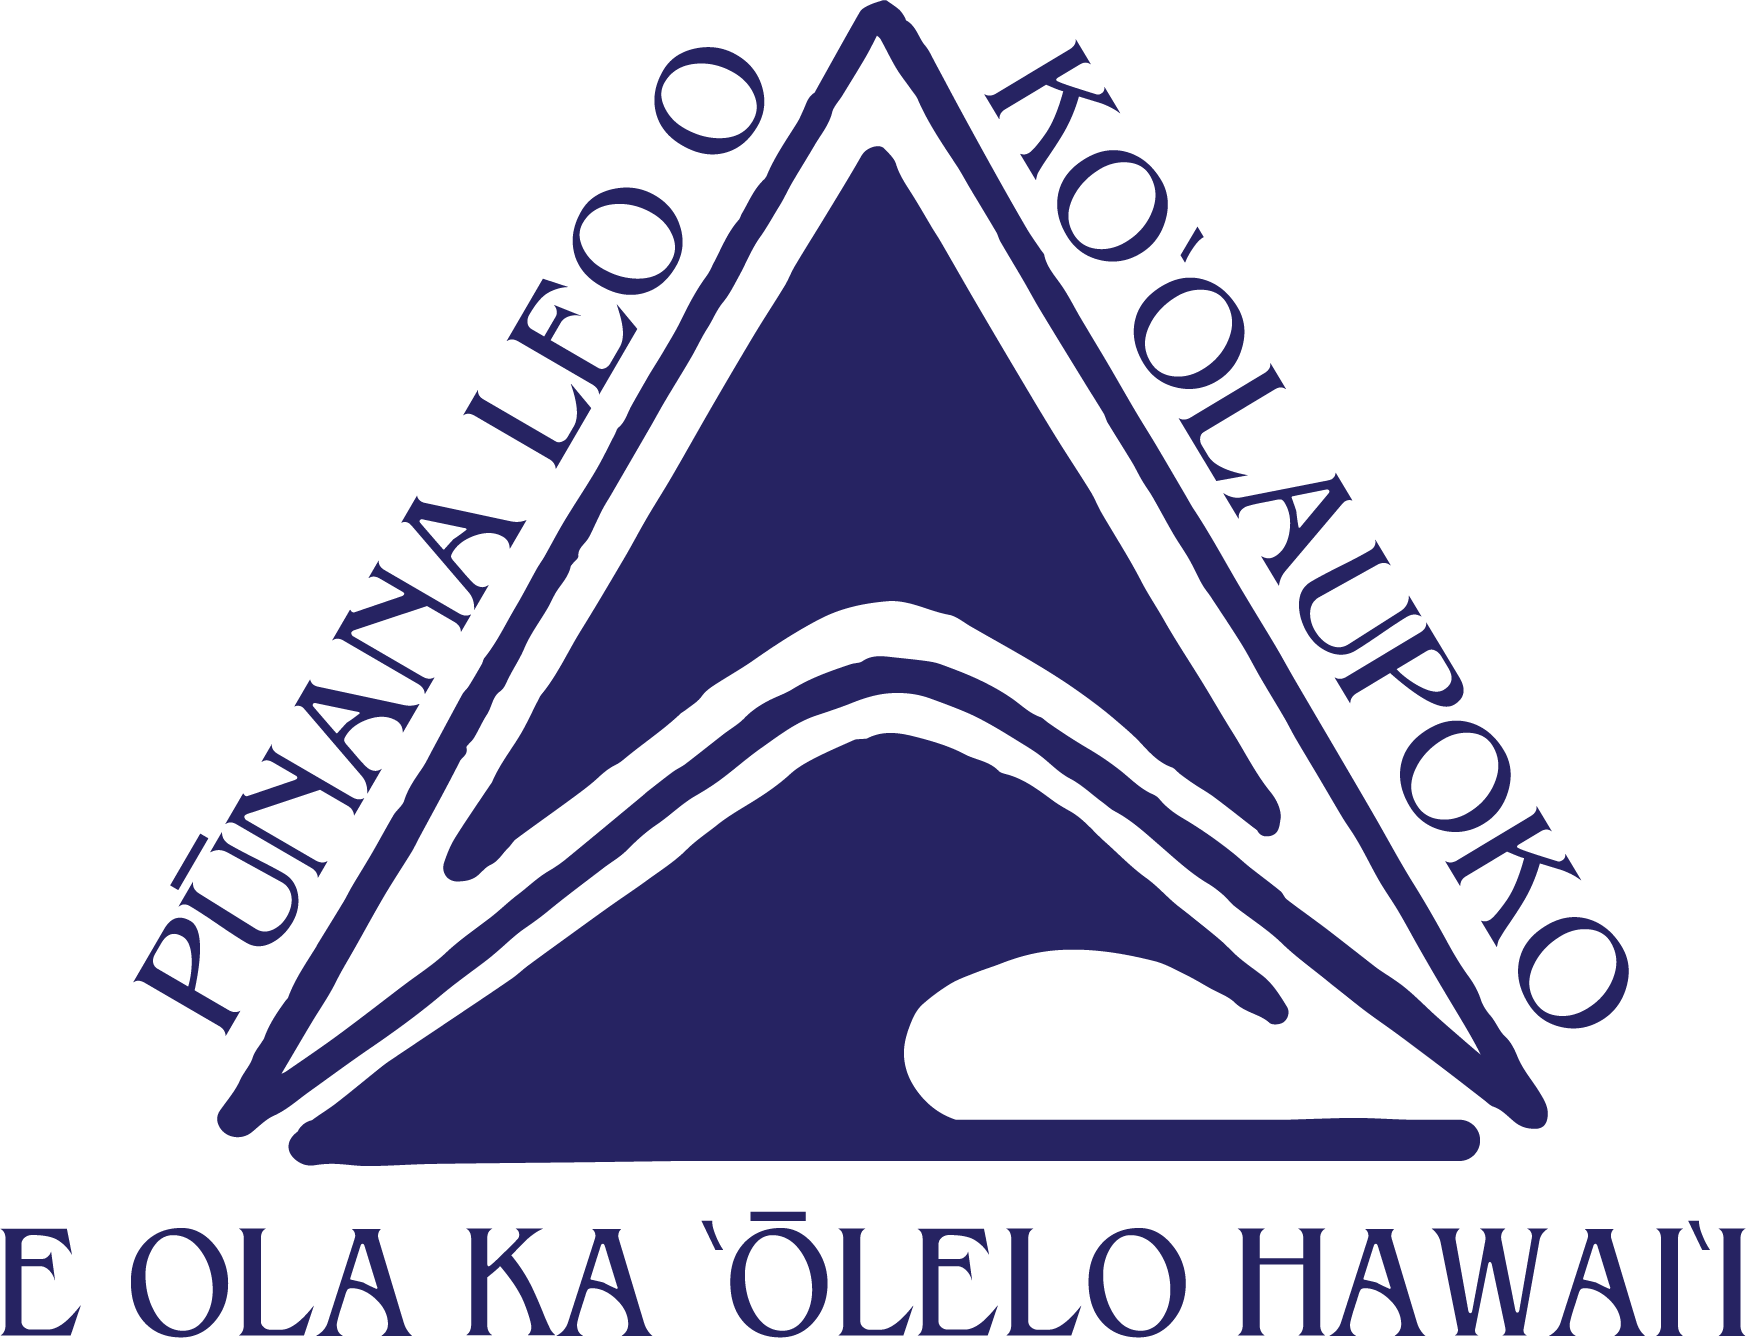 ORDER NOW - Punana Leo o Ko'olau Poko CURRENT ORDERING PERIOD: October 3rd - October 8thPICK UP:All orders placed during this current ordering period will be delivered to Punana Leo O Ko'olau Poko at Classroom C-6 @ 3pm and available to pick up on Friday, October 20th.